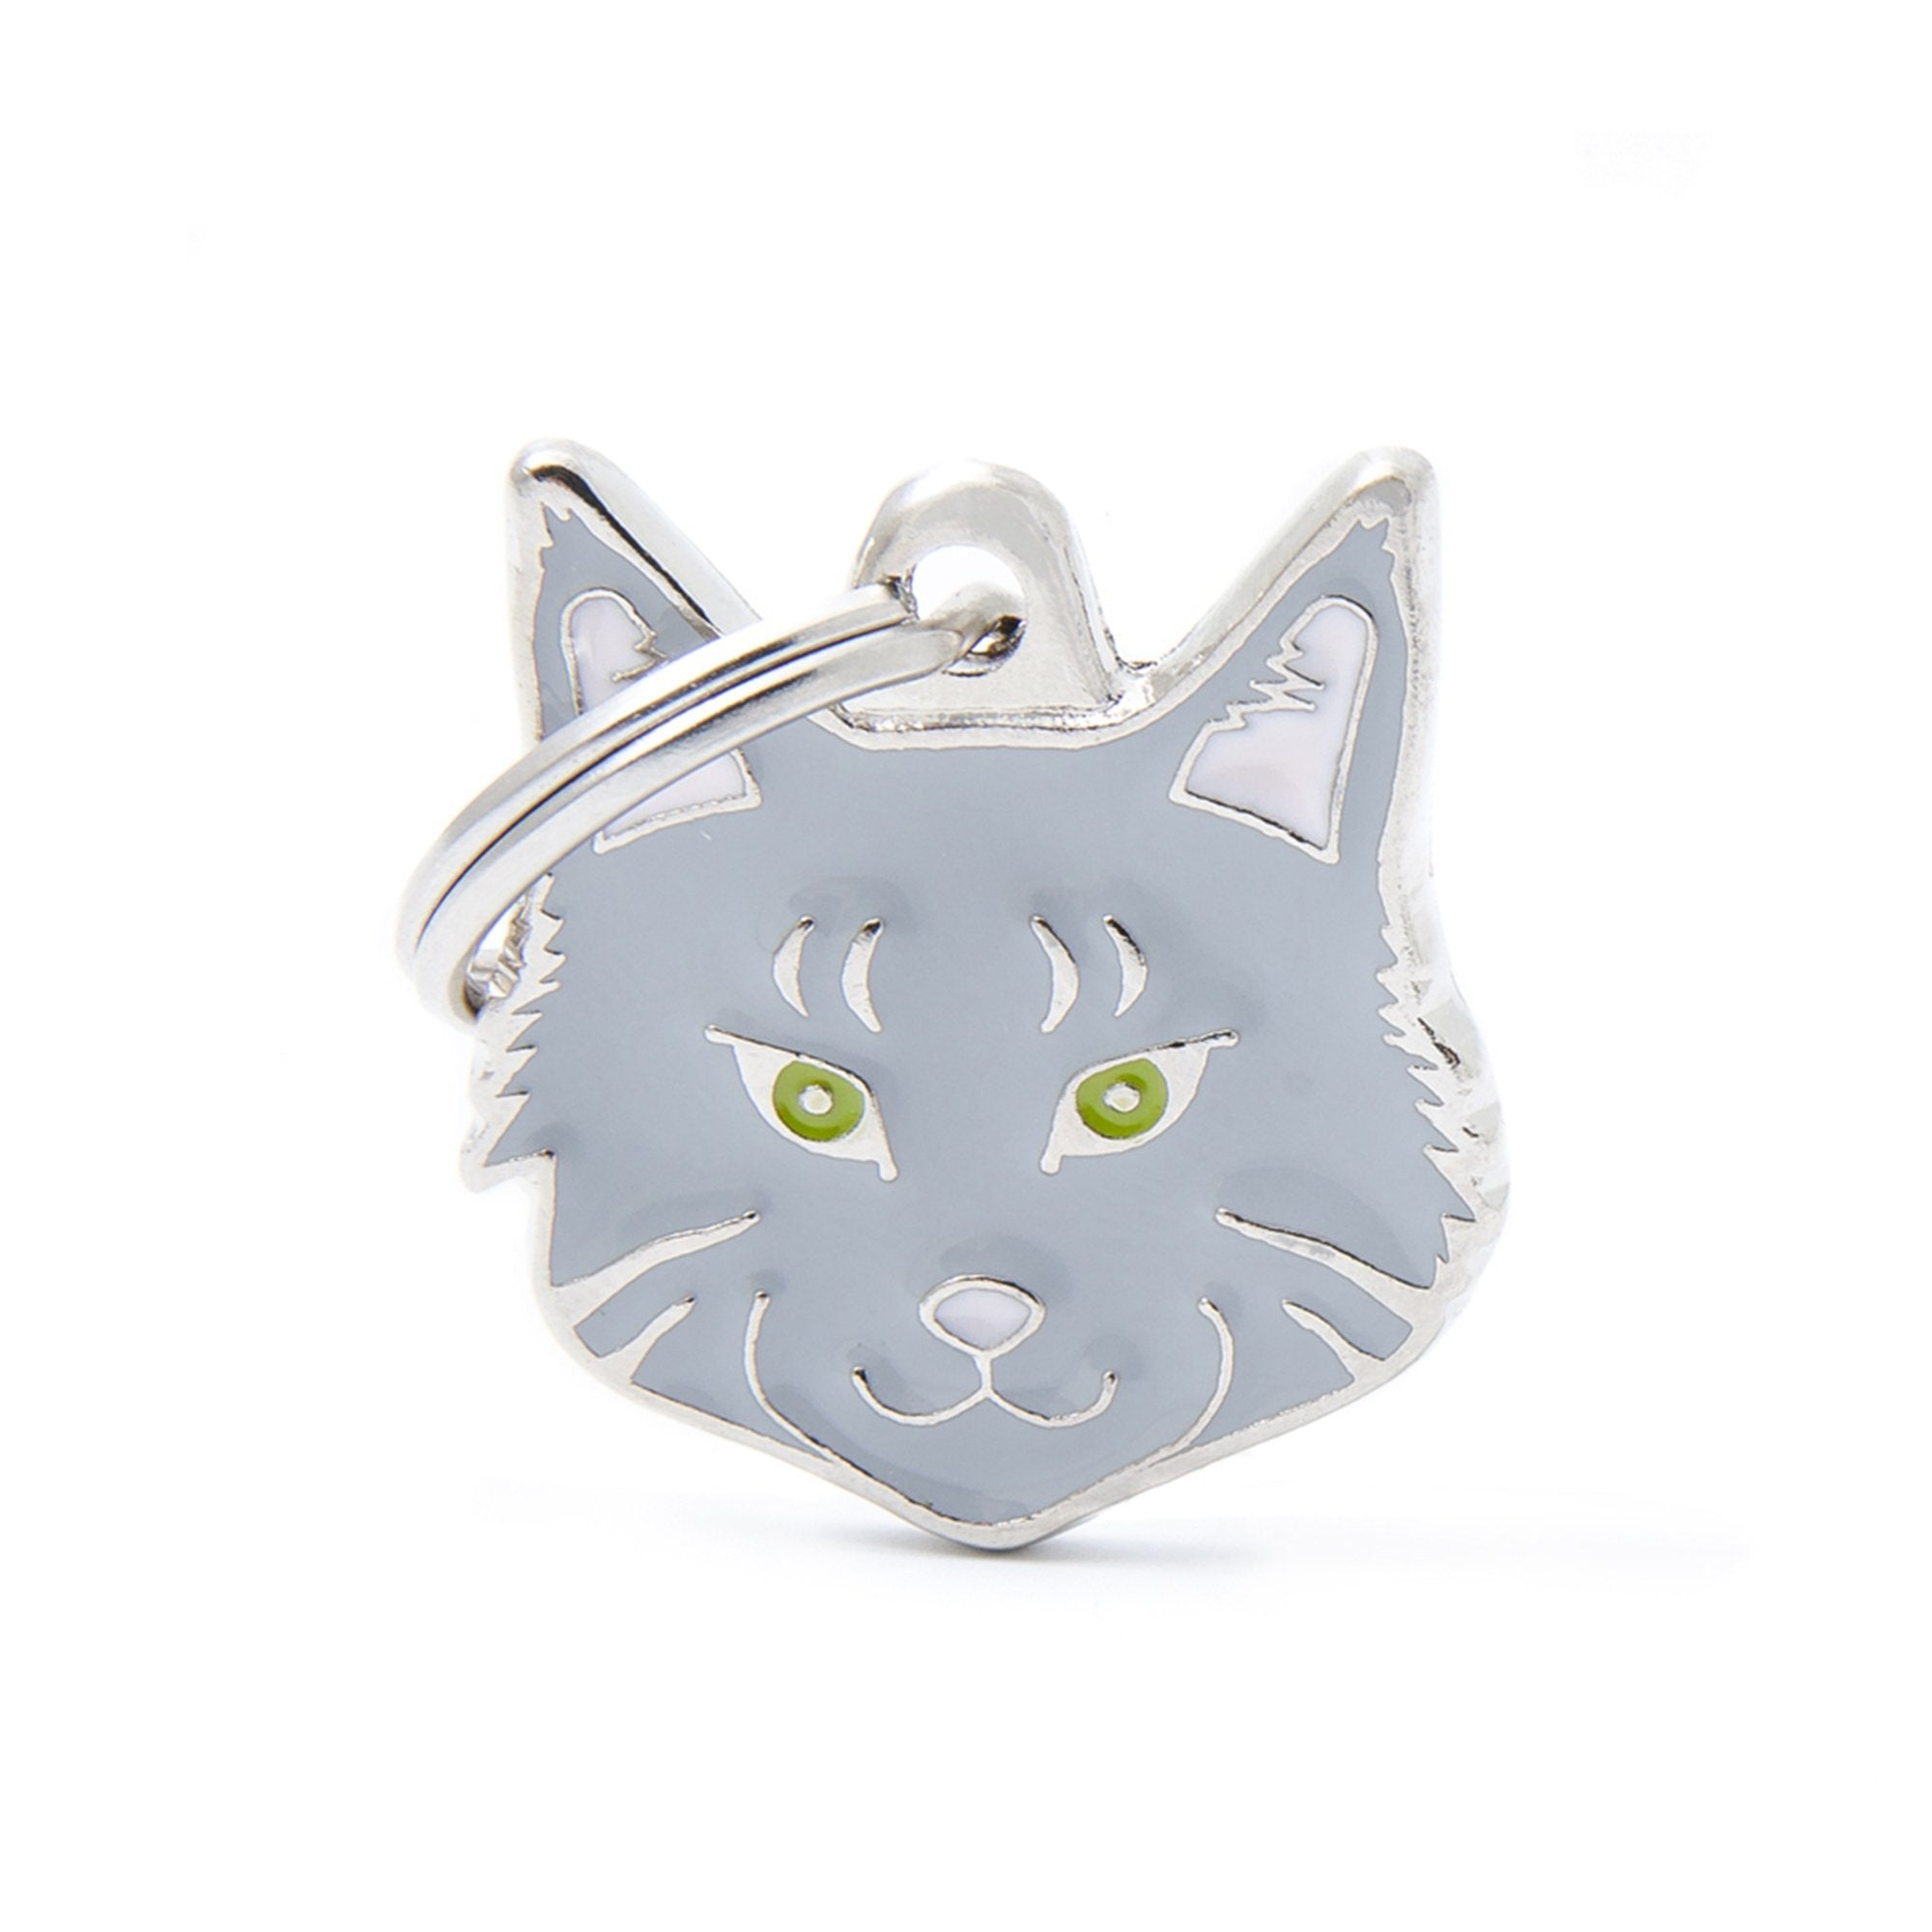 My Family Silver Tabby Maine Coon Dog I.D. Tags - 2B